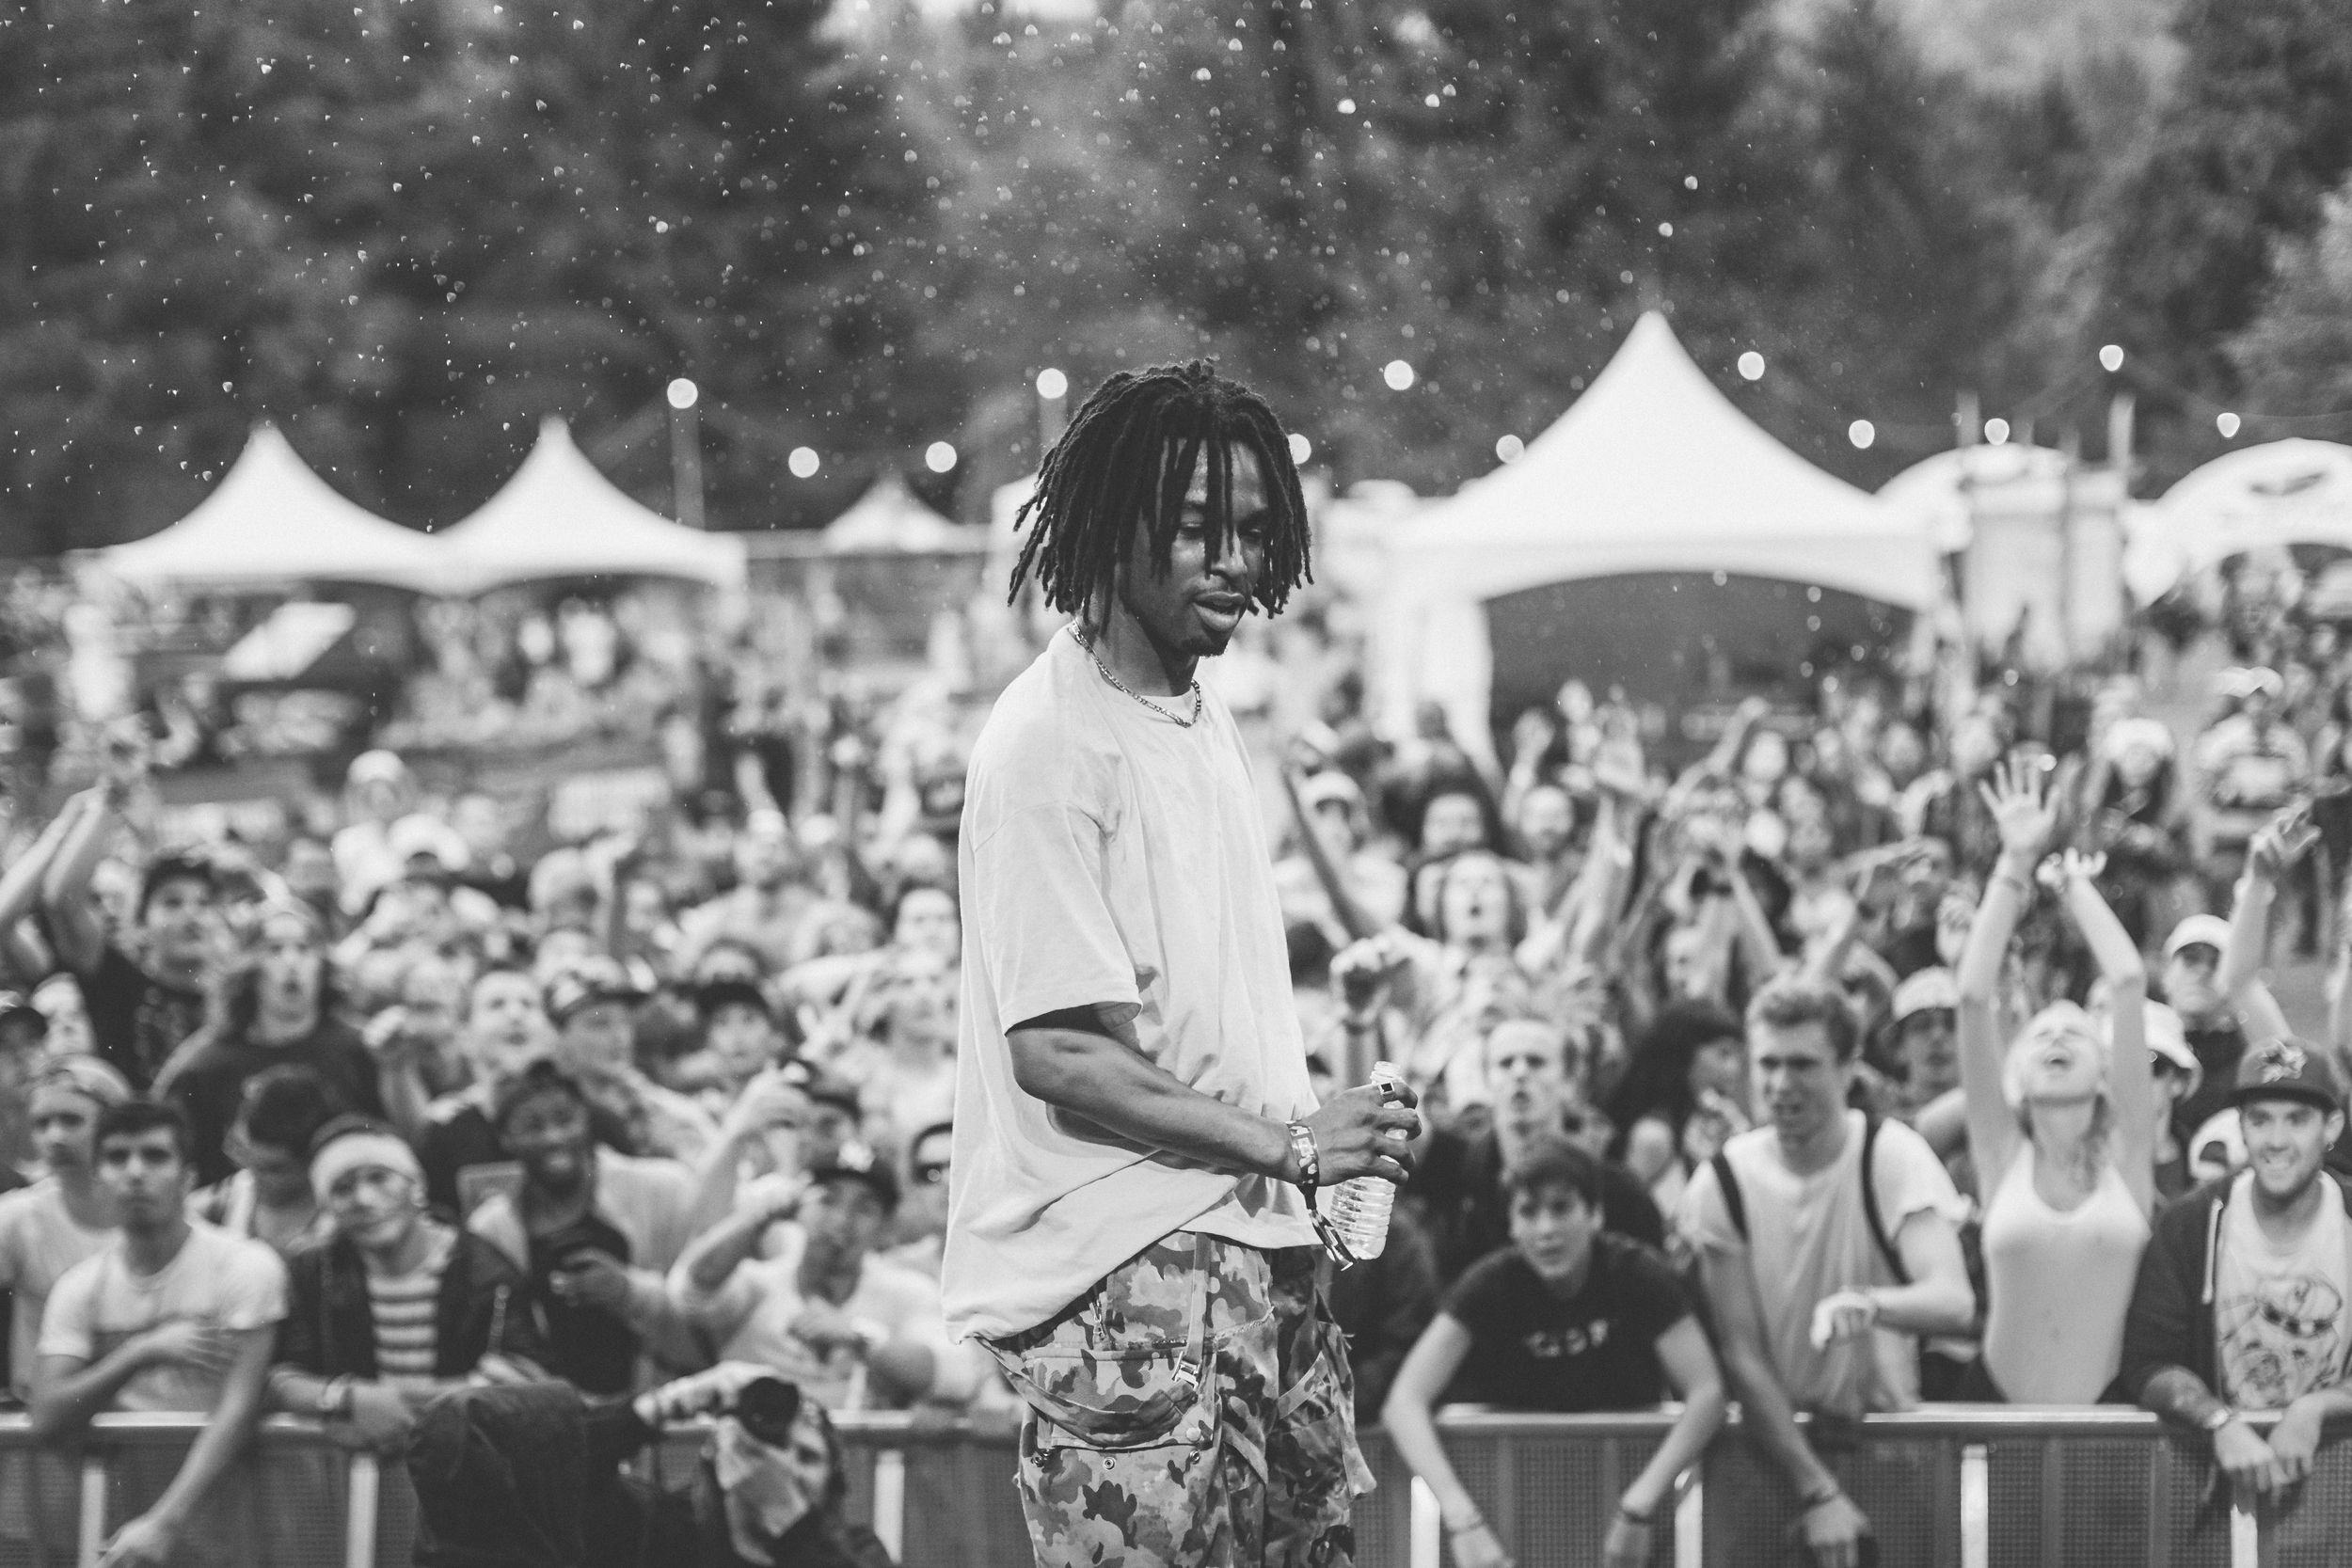 https://soundcloud.com/jazzcartier